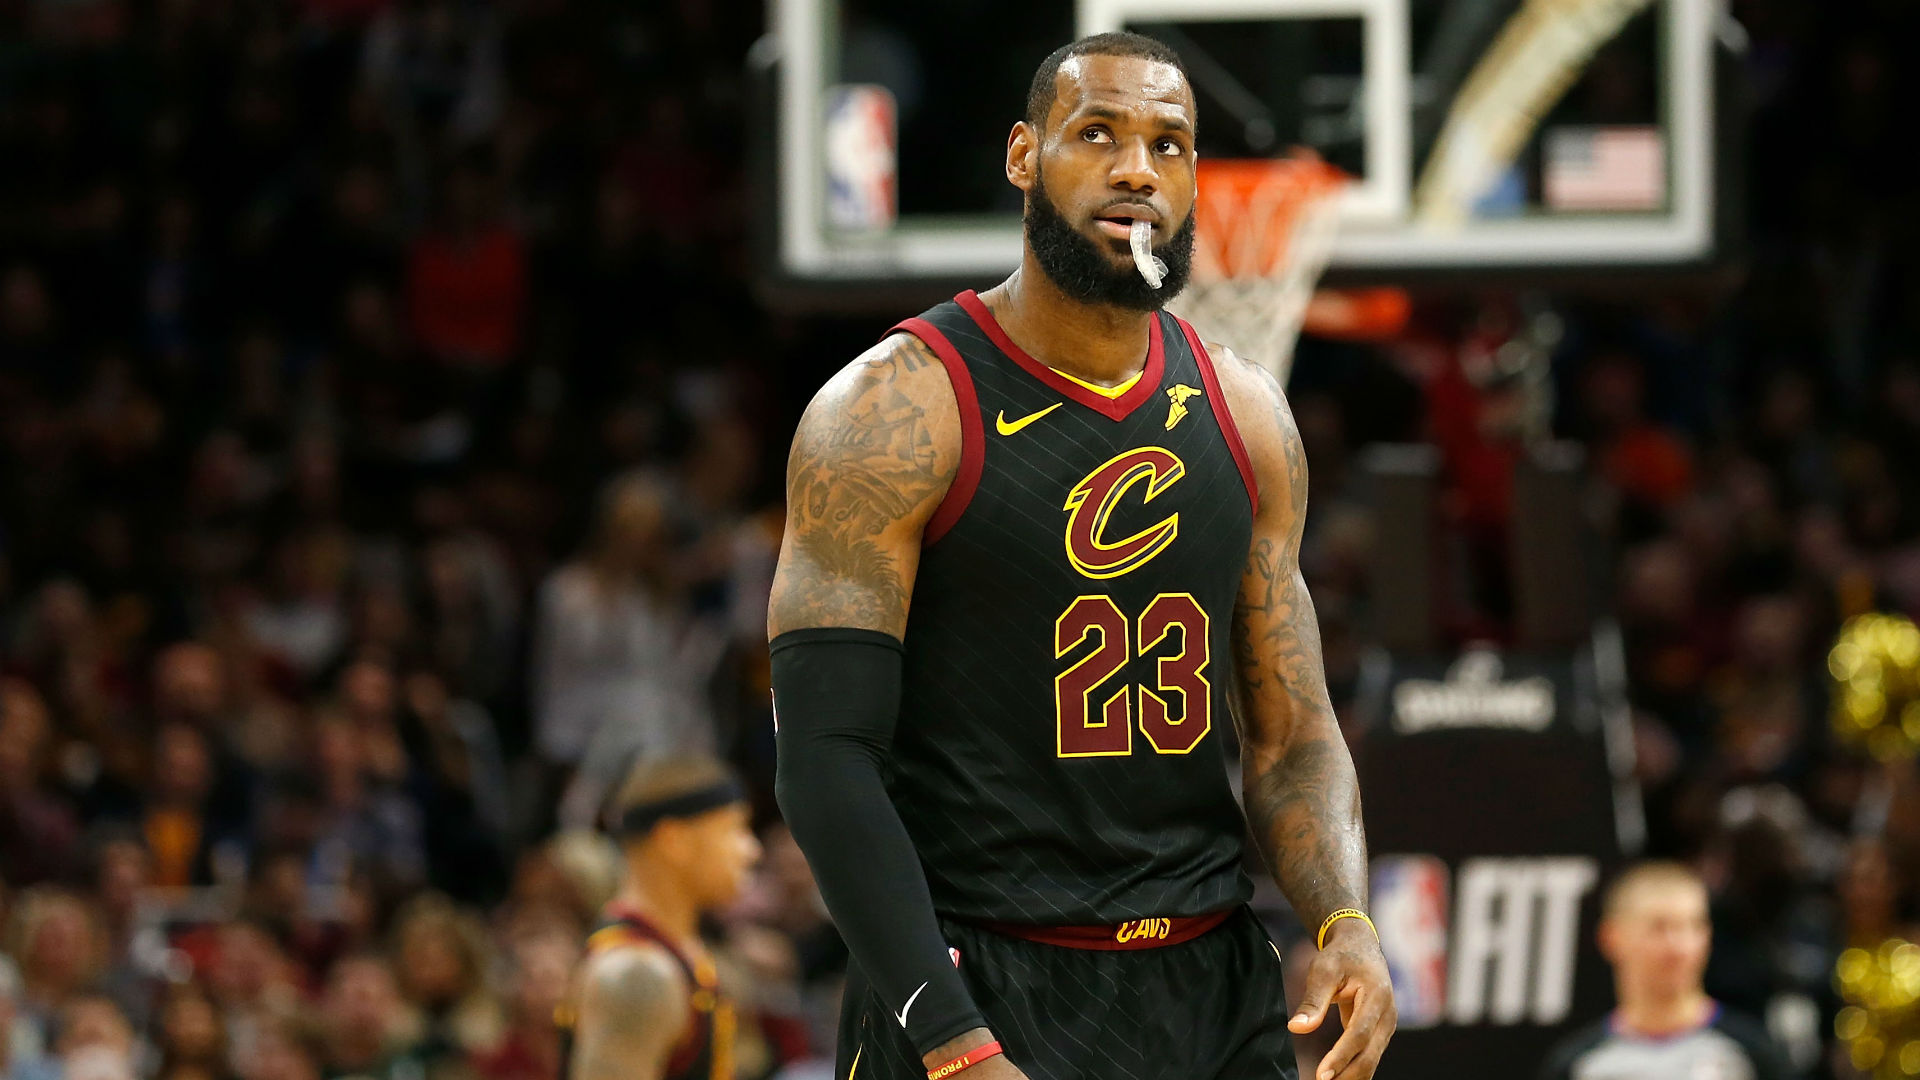 Cleveland Cavaliers: Cavs No Longer Desperate For LeBron James, But Trades